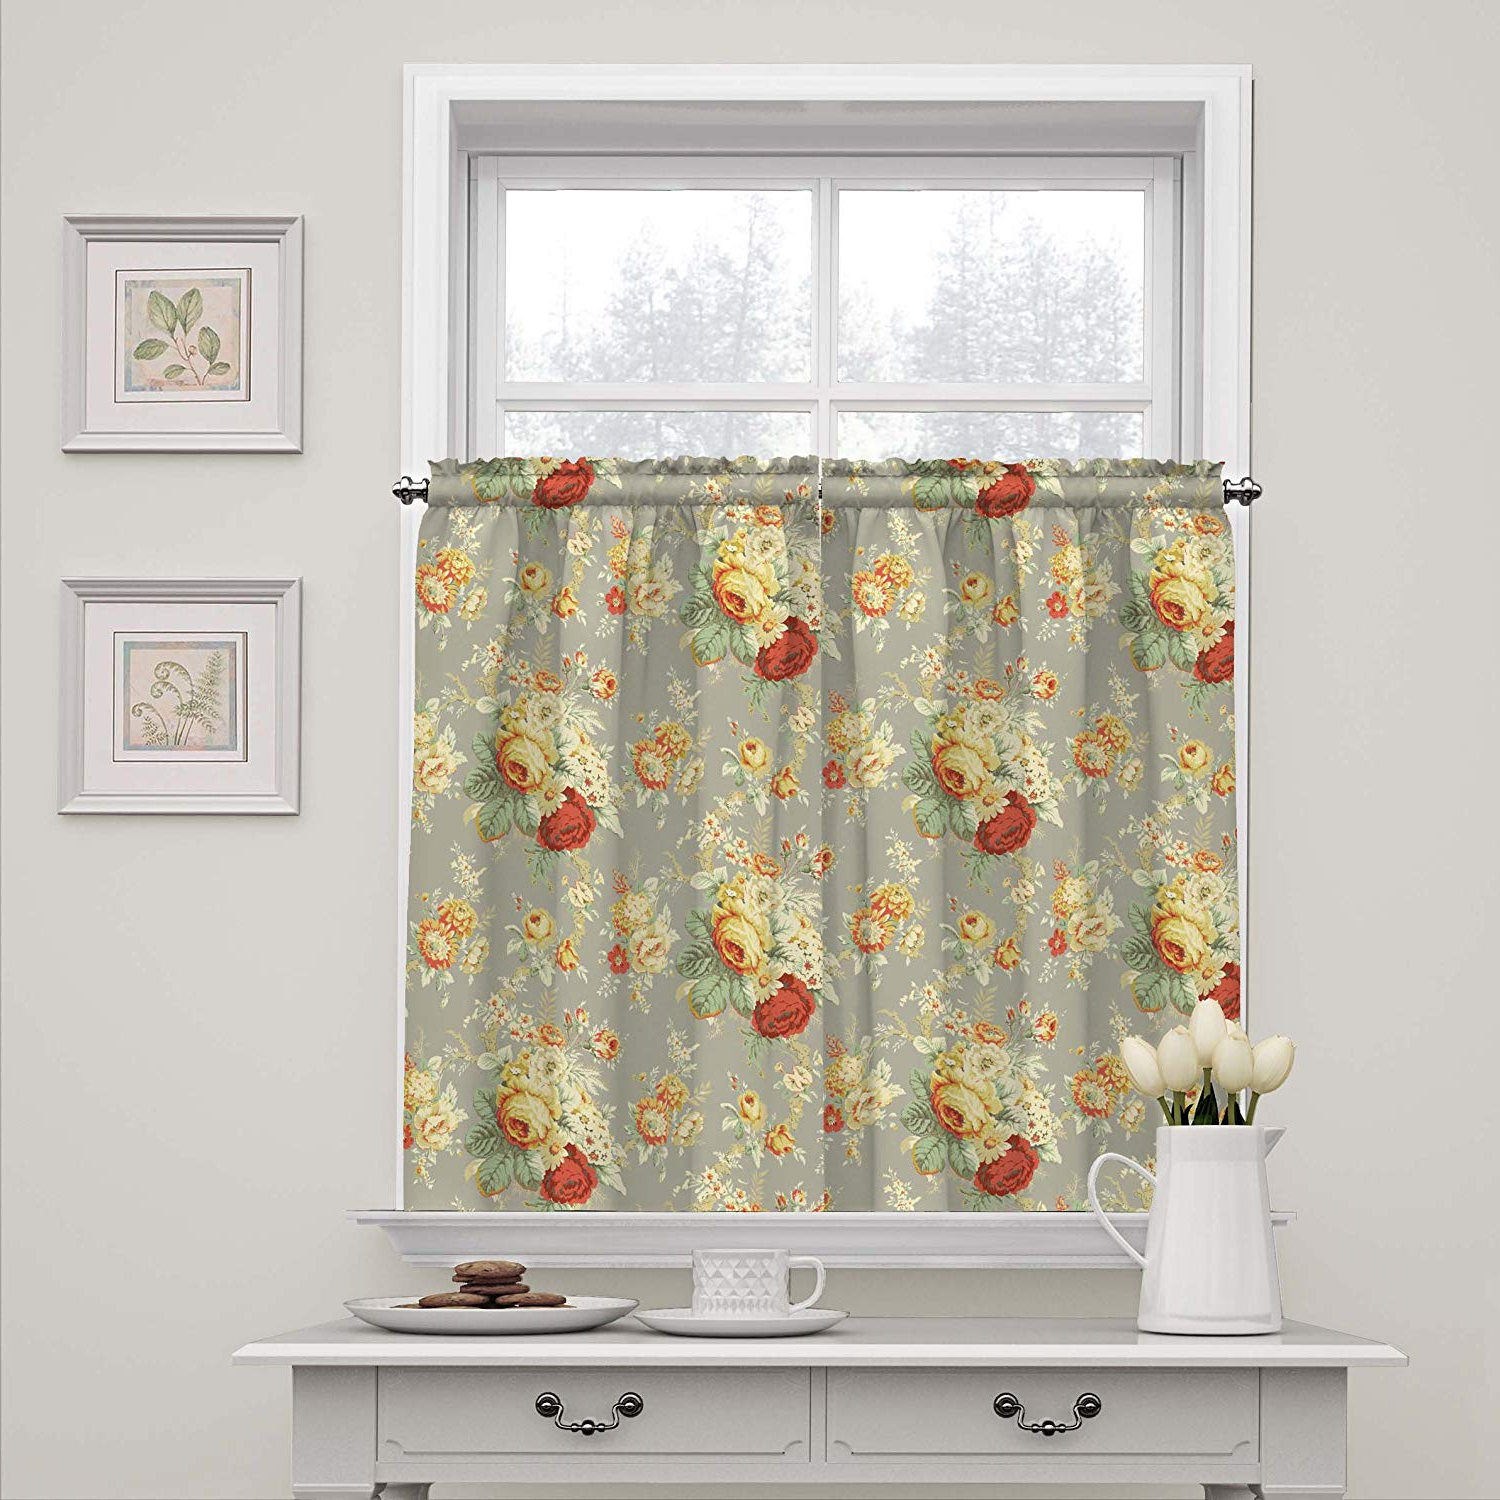 "Waverly Felicite Curtain Tiers For 2020 Waverly Kitchen Curtains Sanctuary Rose 52"" X 36"" Small Panel Tiers Privacy Window Treatment Pair Bathroom, Living Room, Clay (View 13 of 20)"